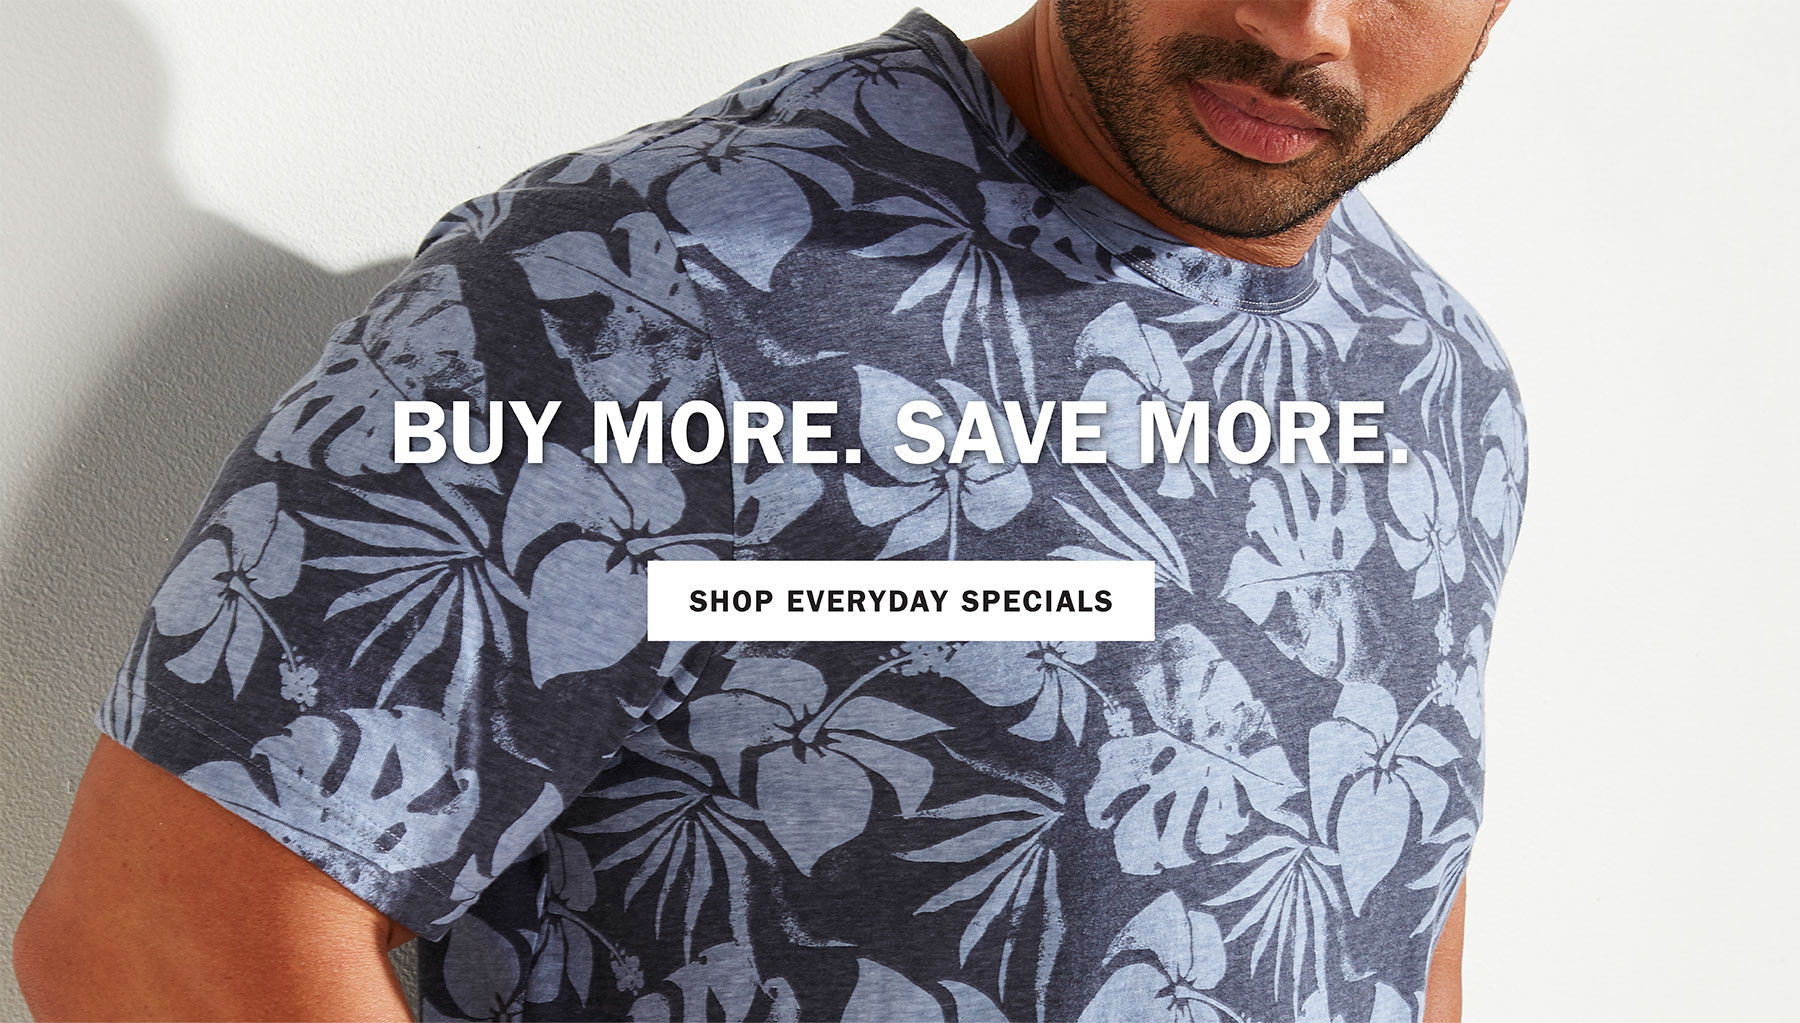 BUY MORE. SAVE MOVE. | SHOP EVERYDAY SPECIALS